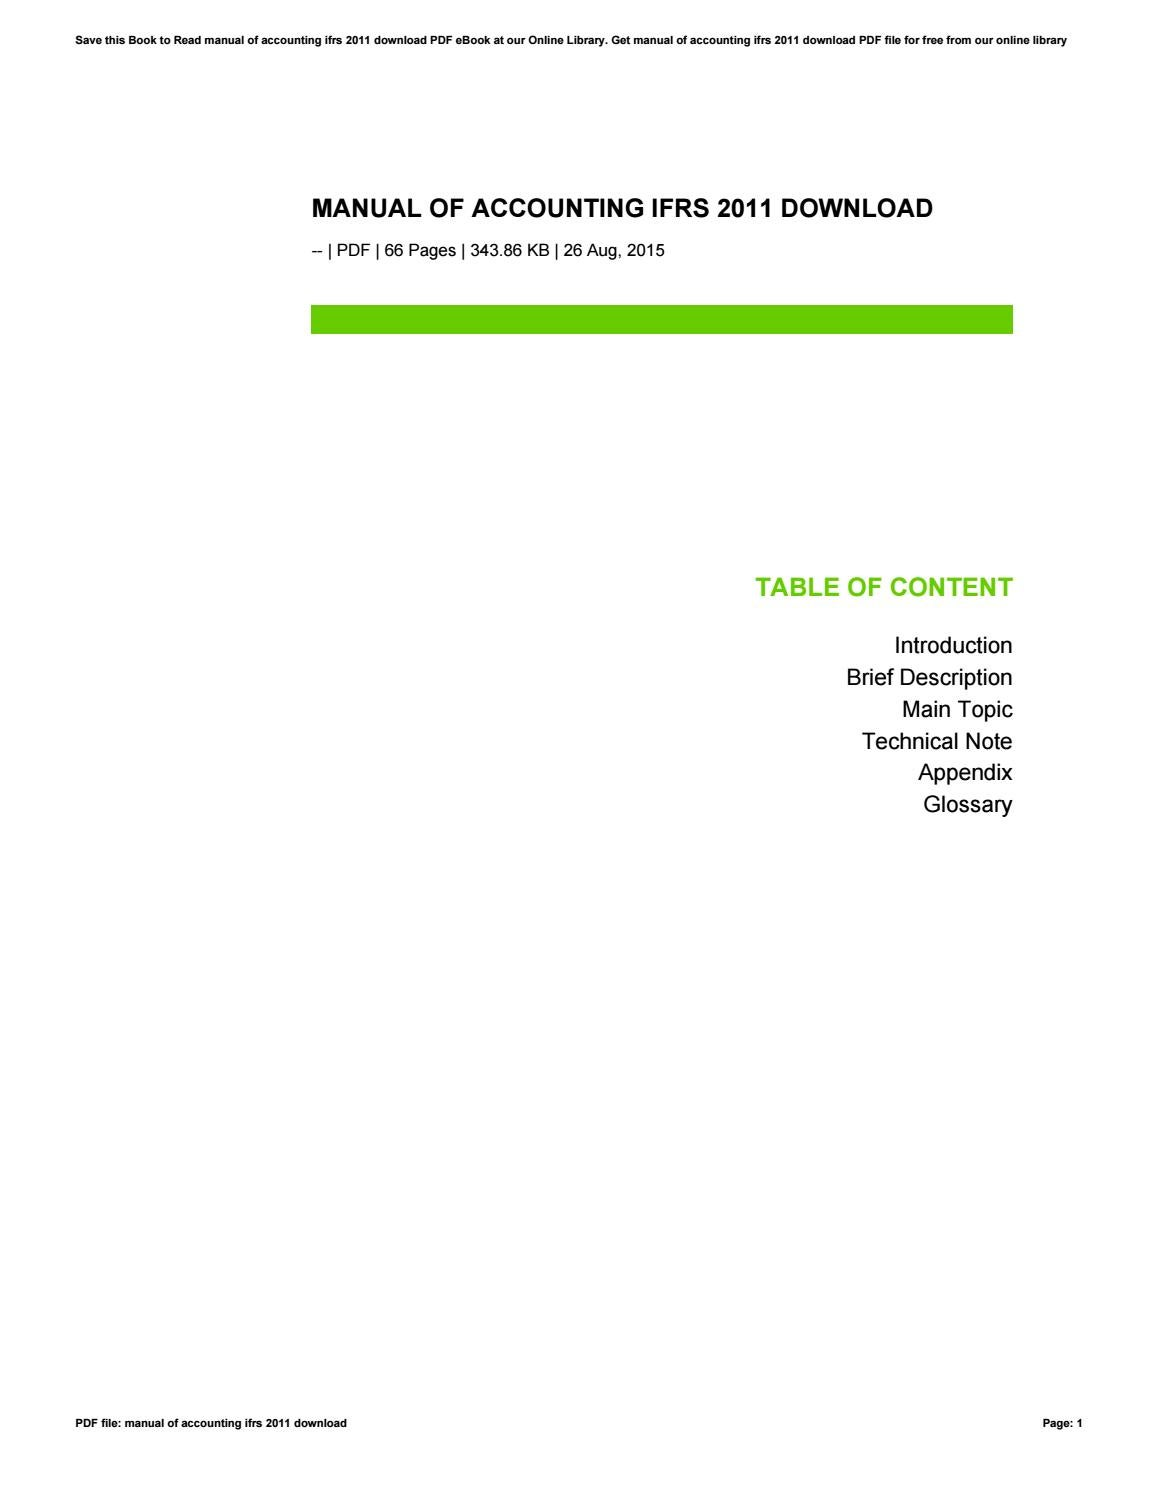 Manual of accounting ifrs 2011 download by rissa32resse issuu fandeluxe Image collections